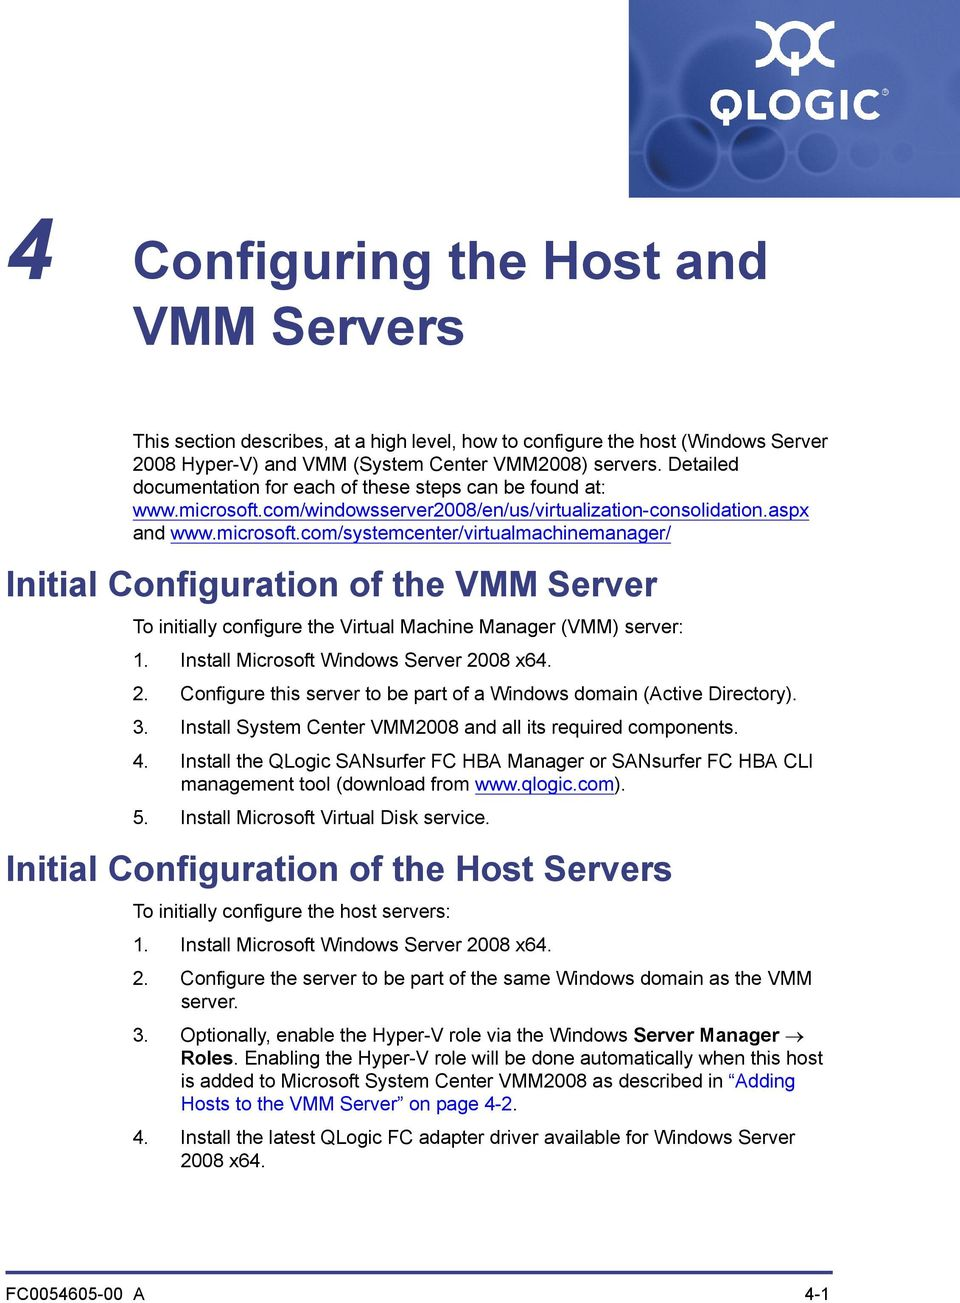 com/windowsserver2008/en/us/virtualization-consolidation.aspx and www.microsoft.